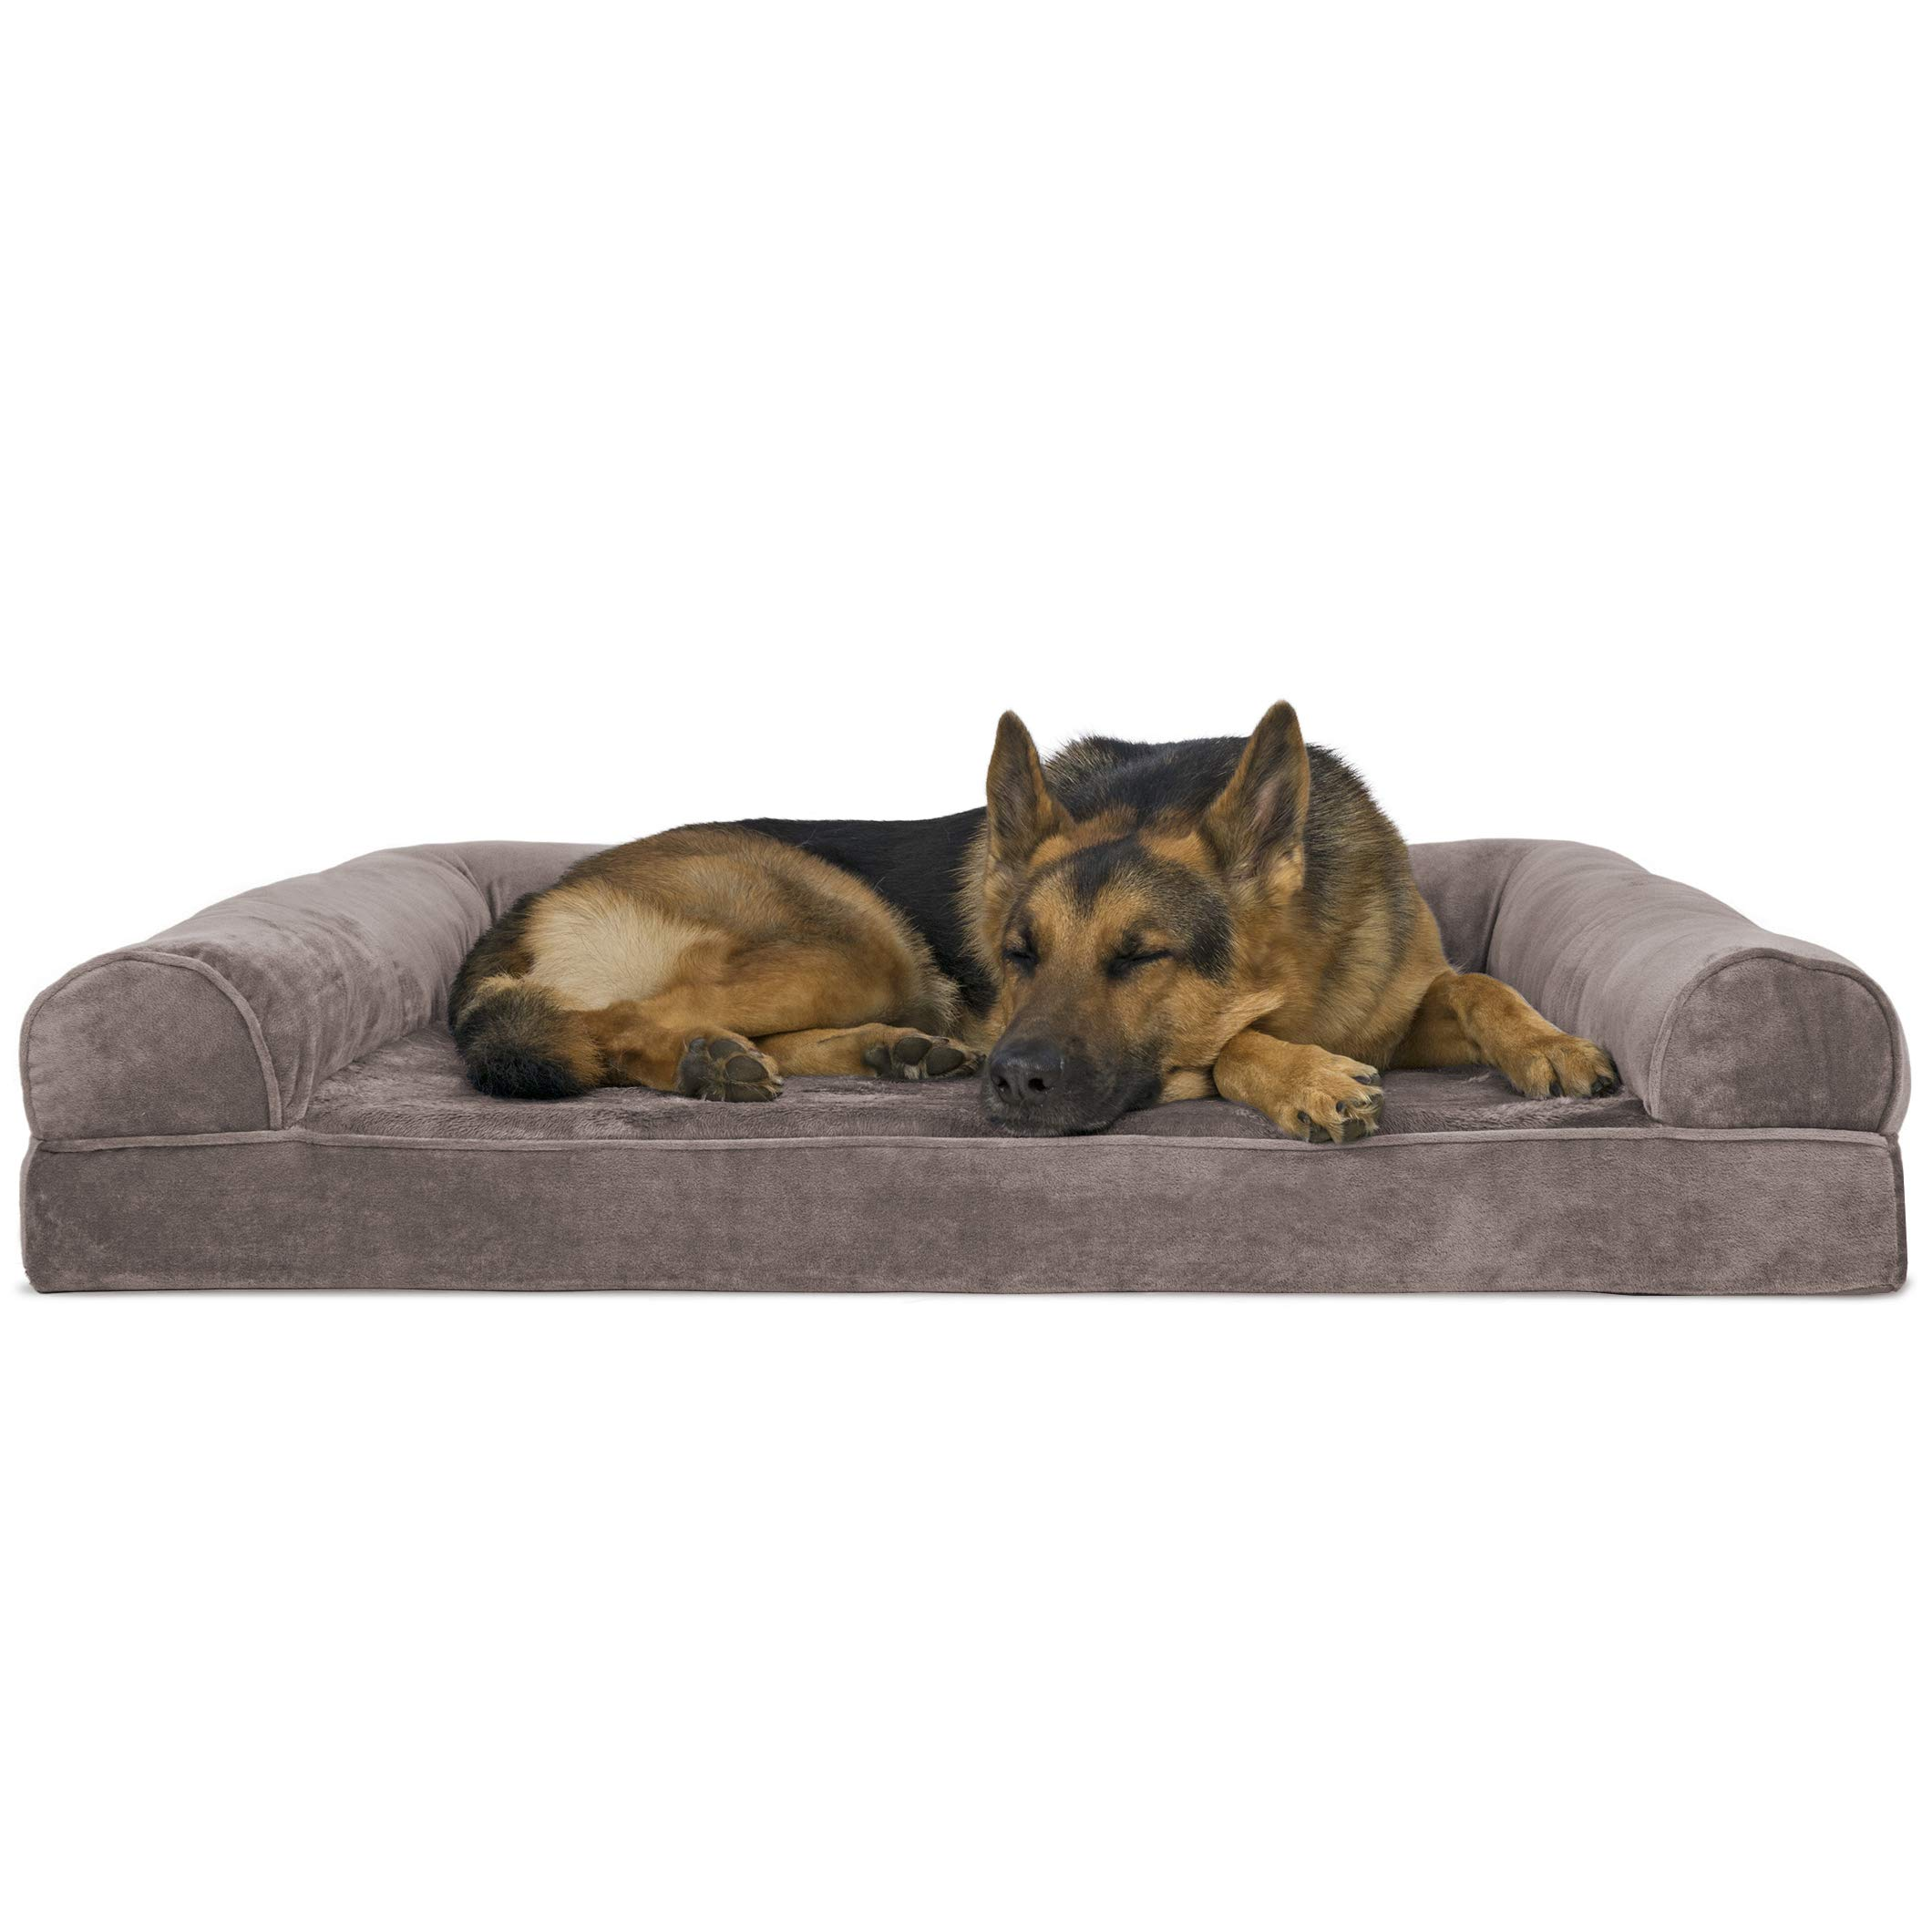 Furhaven Pet Dog Bed | Orthopedic Faux Fur & Velvet Traditional Sofa-Style Living Room Couch Pet Bed w/Removable Cover for Dogs & Cats, Driftwood Brown, Jumbo by Furhaven